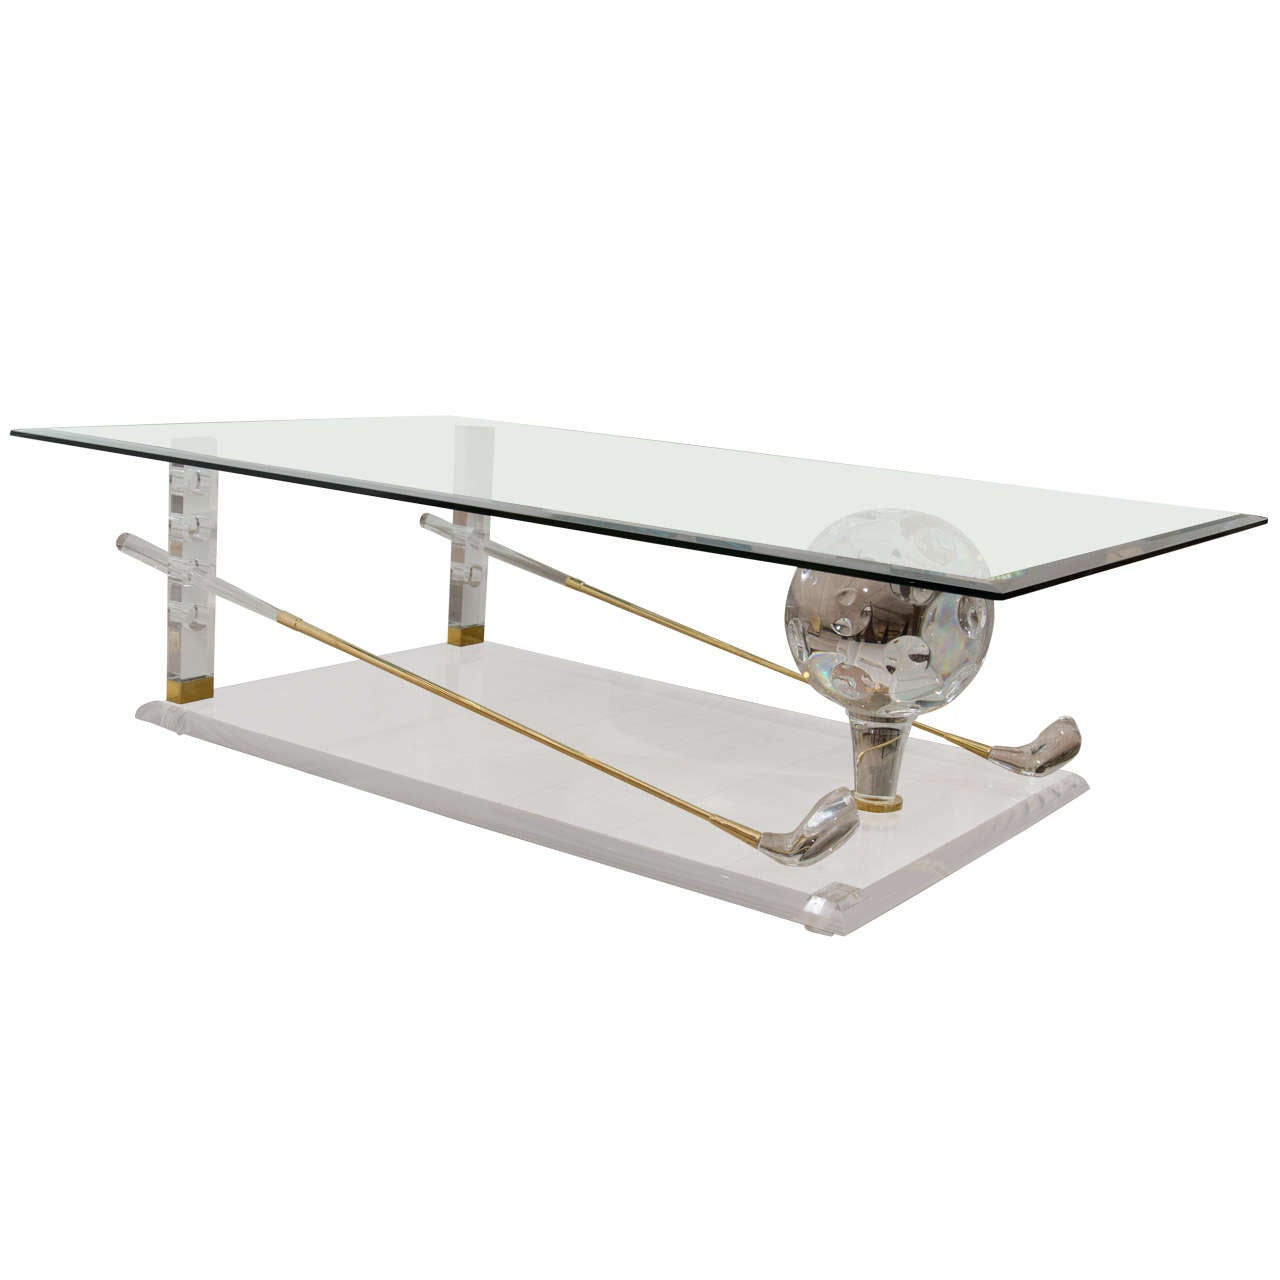 Brass lucite and glass quotgolfquot themed coffee table at 1stdibs for Themed coffee tables